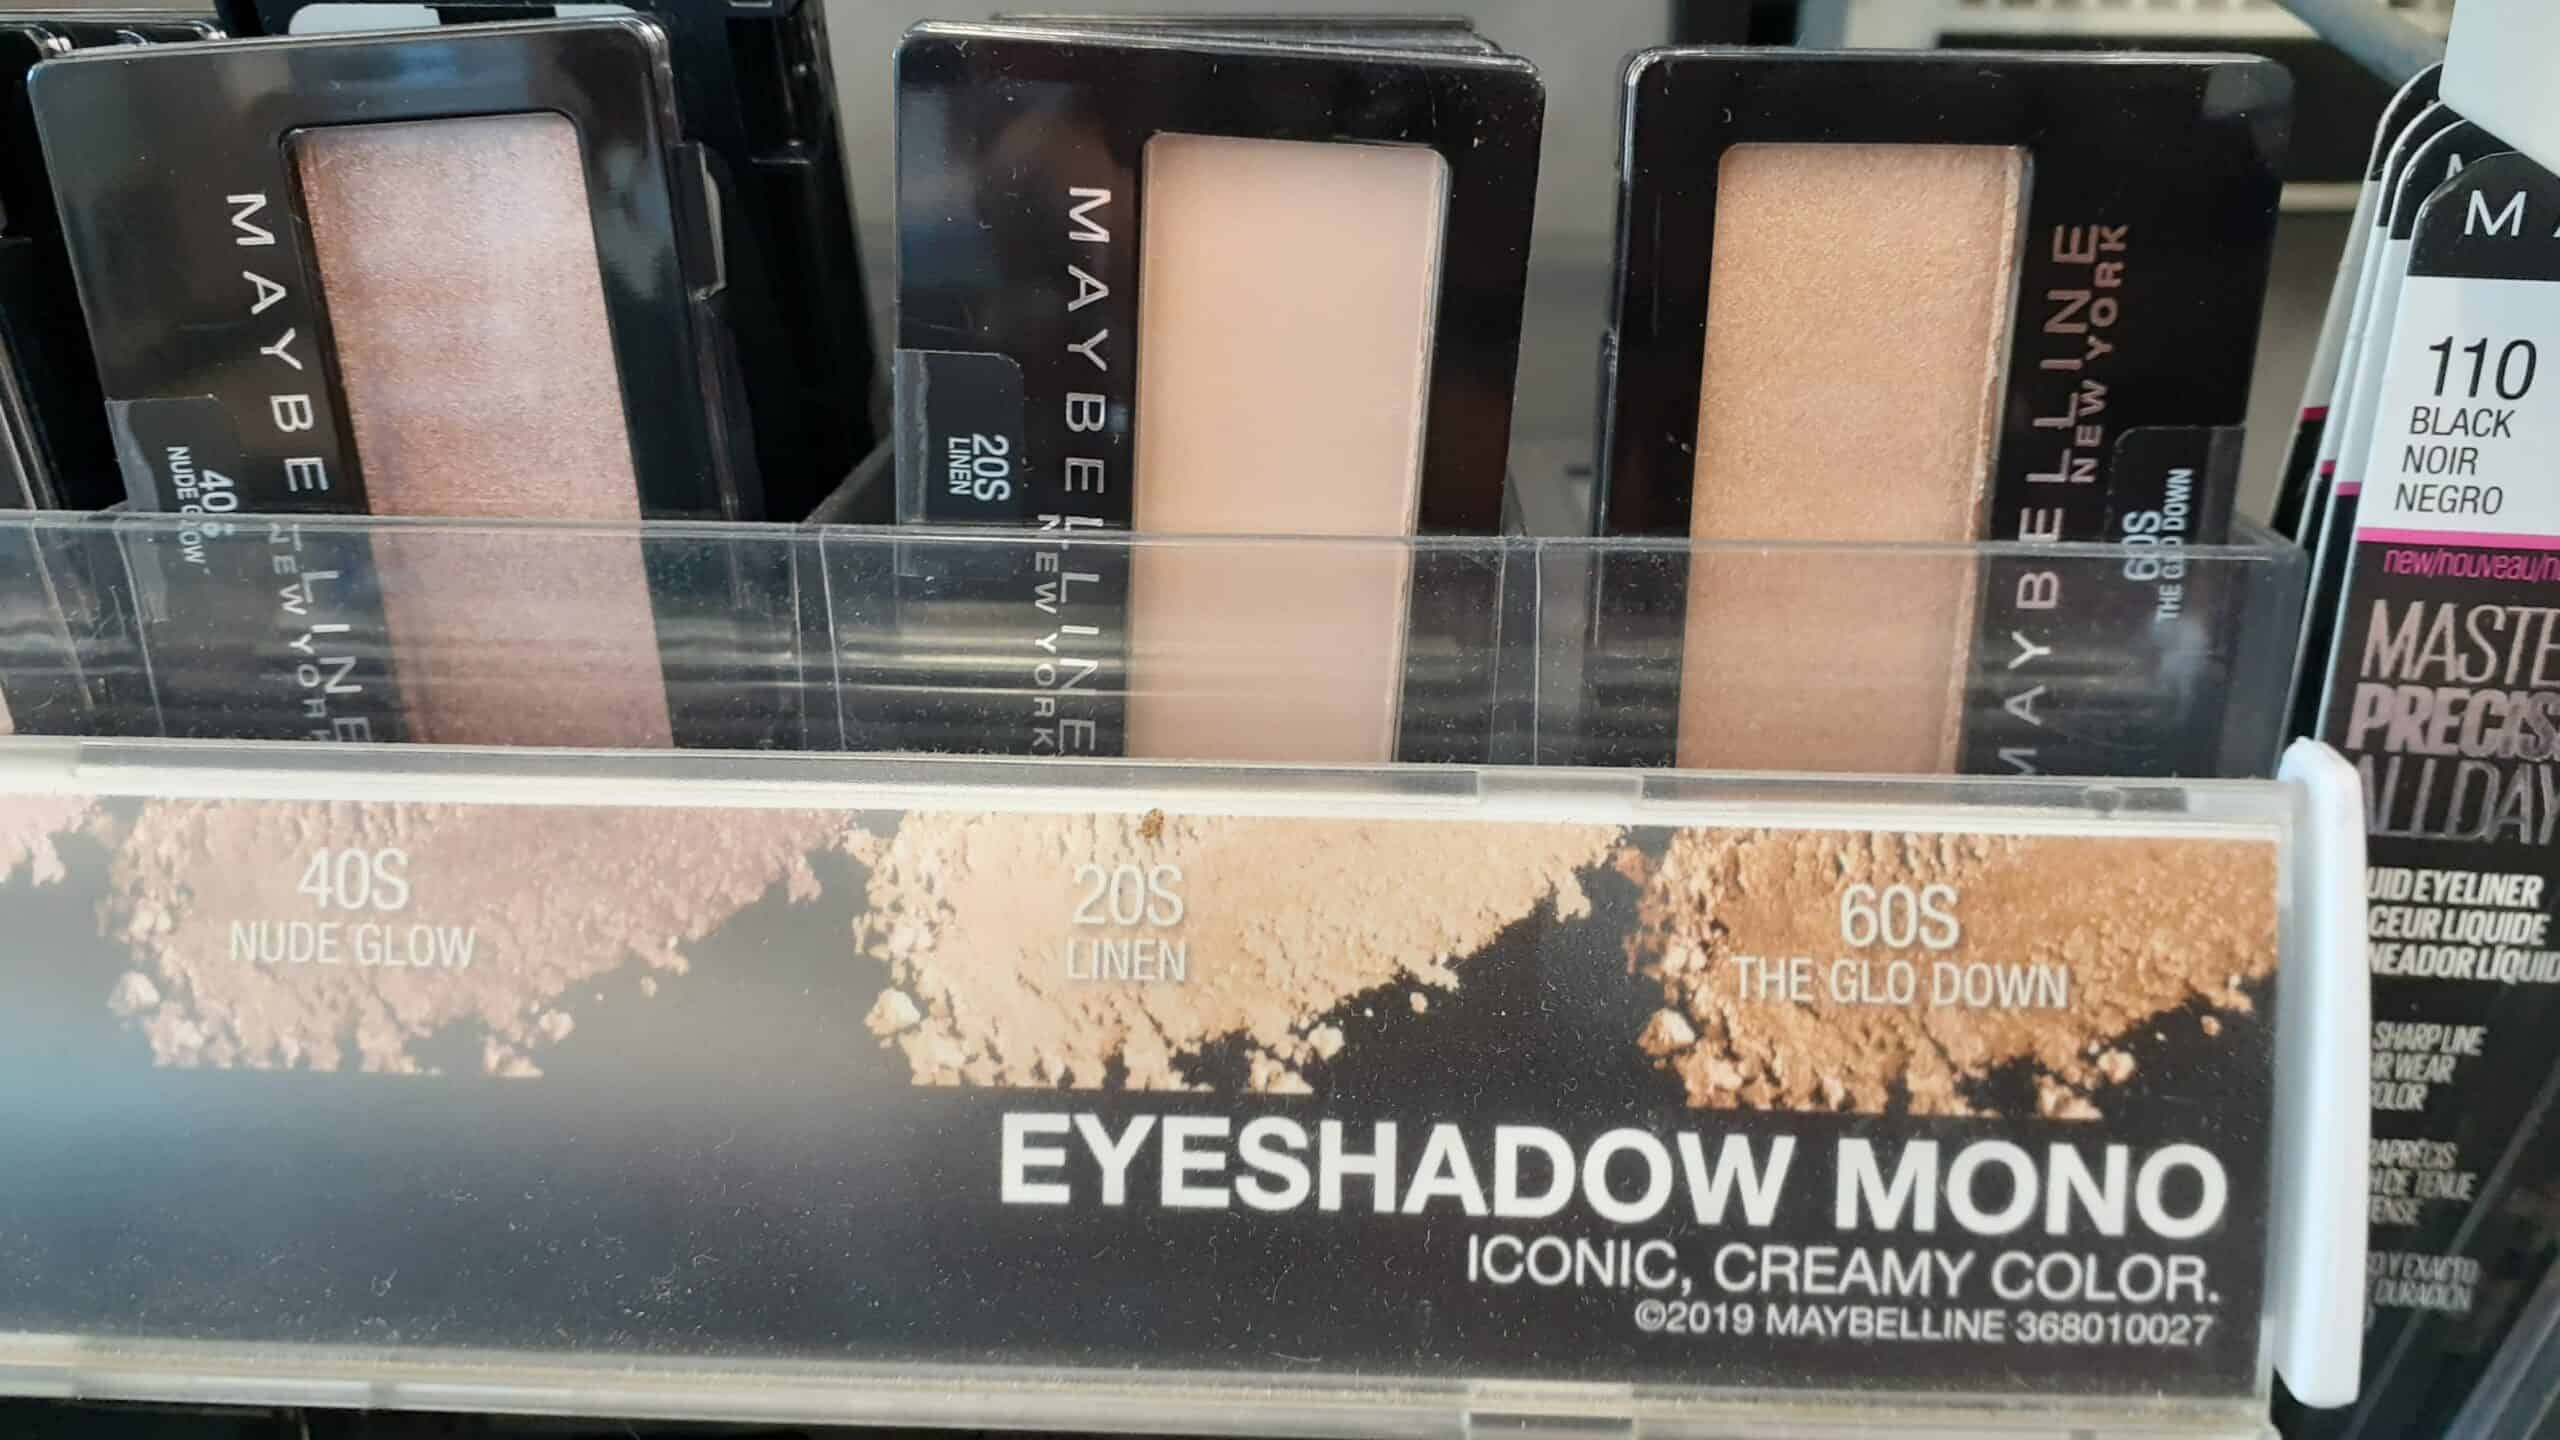 Maybelline Mono Eyeshadow at Walgreens